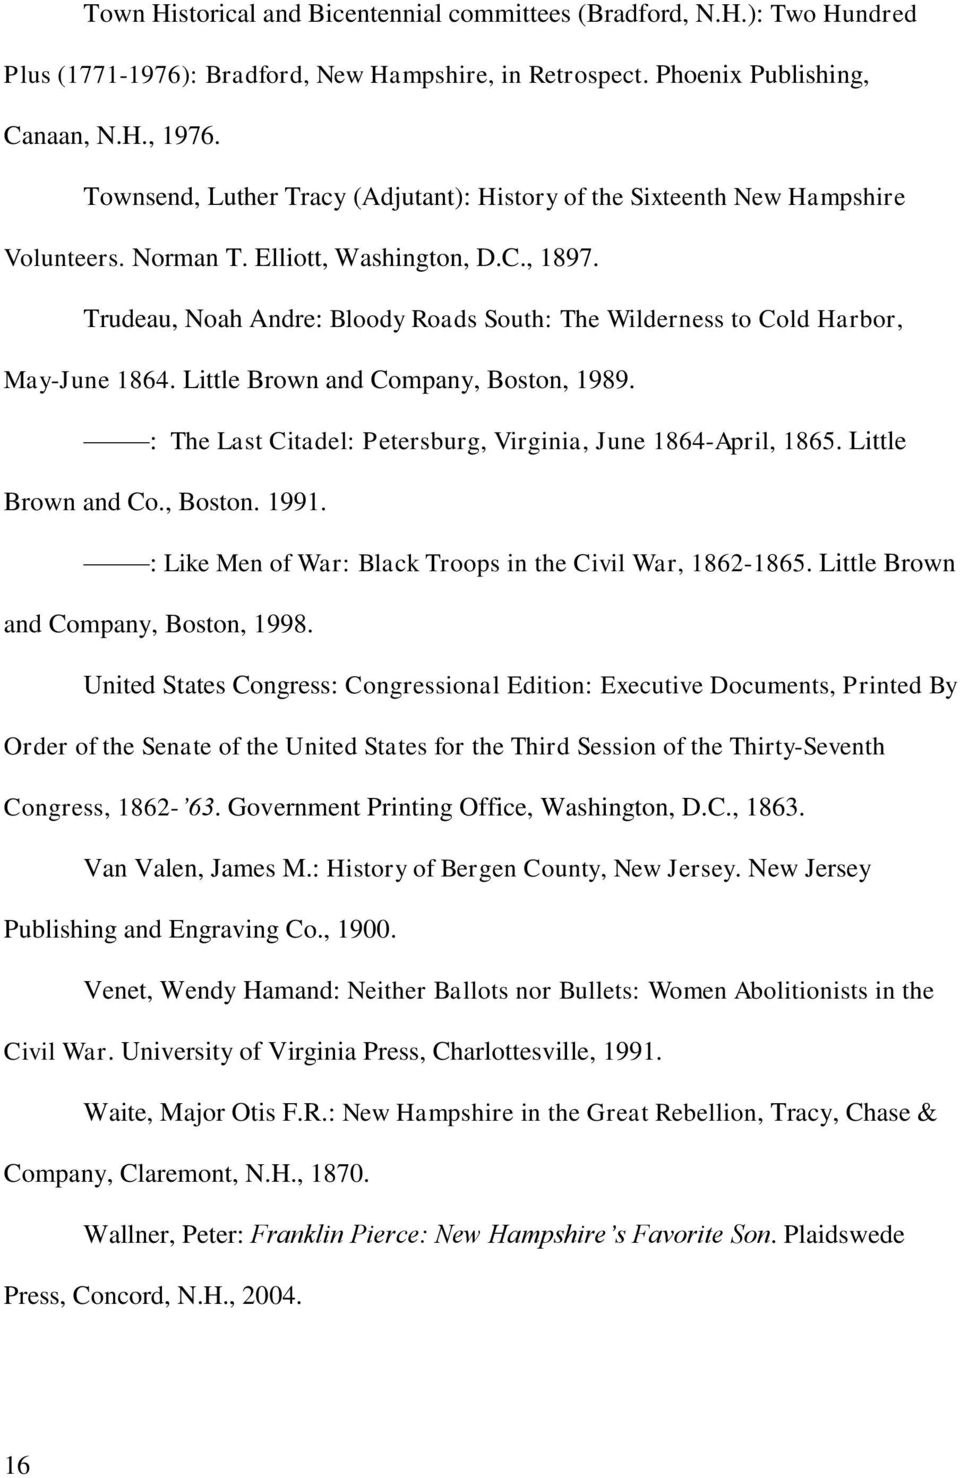 Trudeau, Noah Andre: Bloody Roads South: The Wilderness to Cold Harbor, May-June 1864. Little Brown and Company, Boston, 1989. : The Last Citadel: Petersburg, Virginia, June 1864-April, 1865.